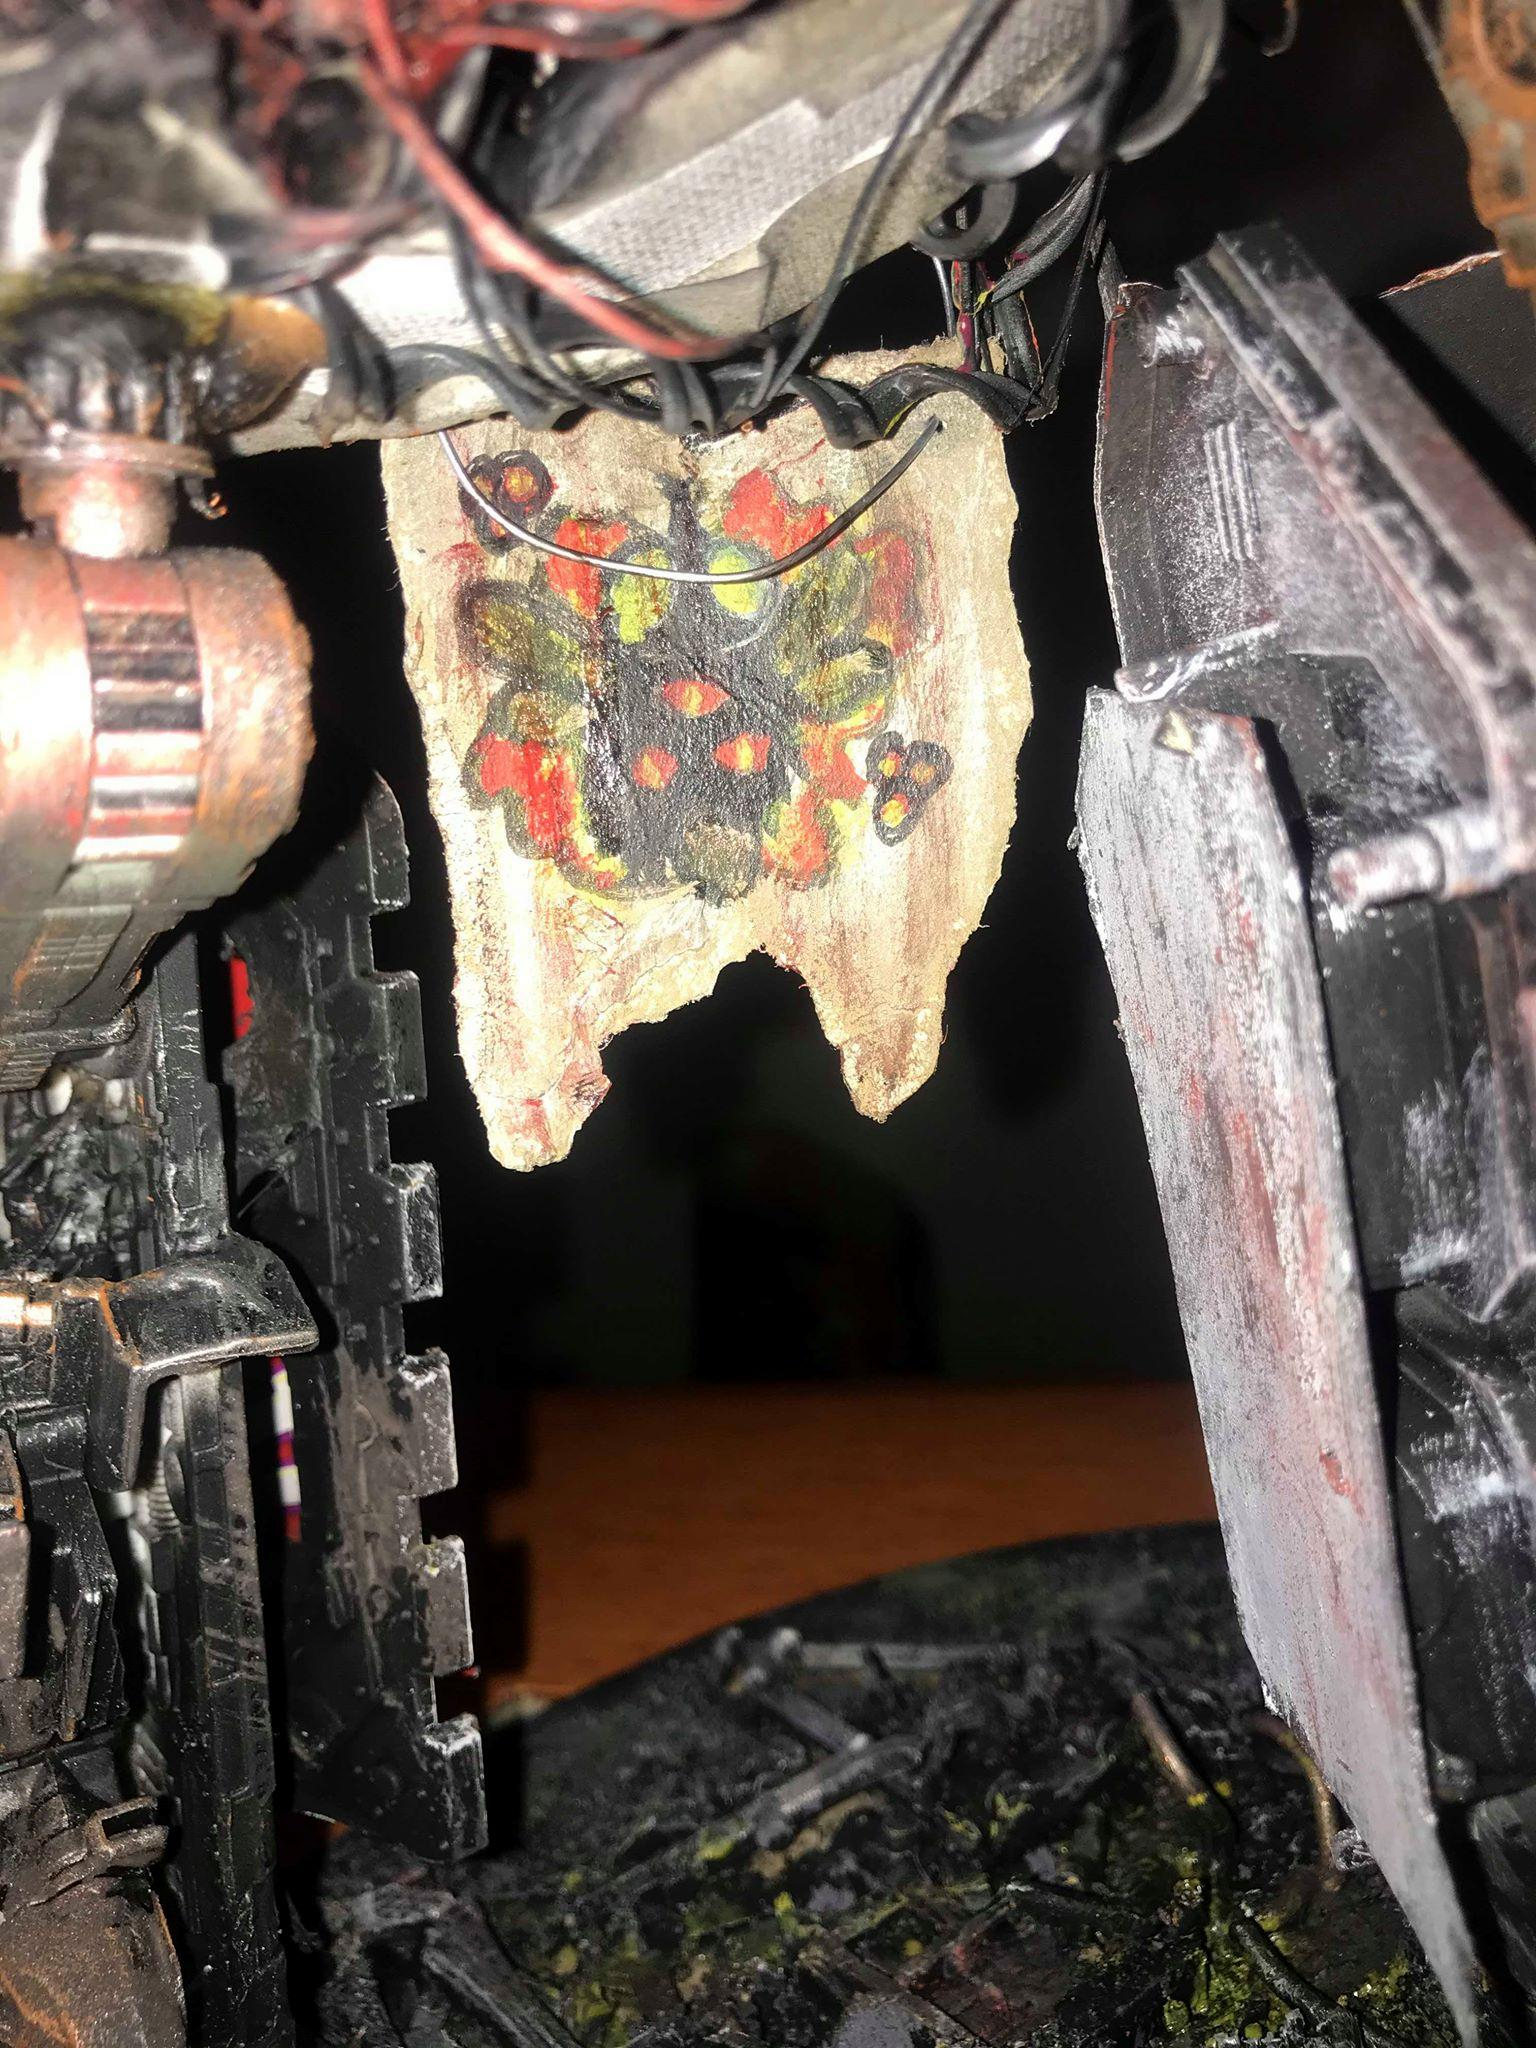 Banner, Chaos, Icon, Nurgle, Reaver, Scratch Build, Titan, Warlord